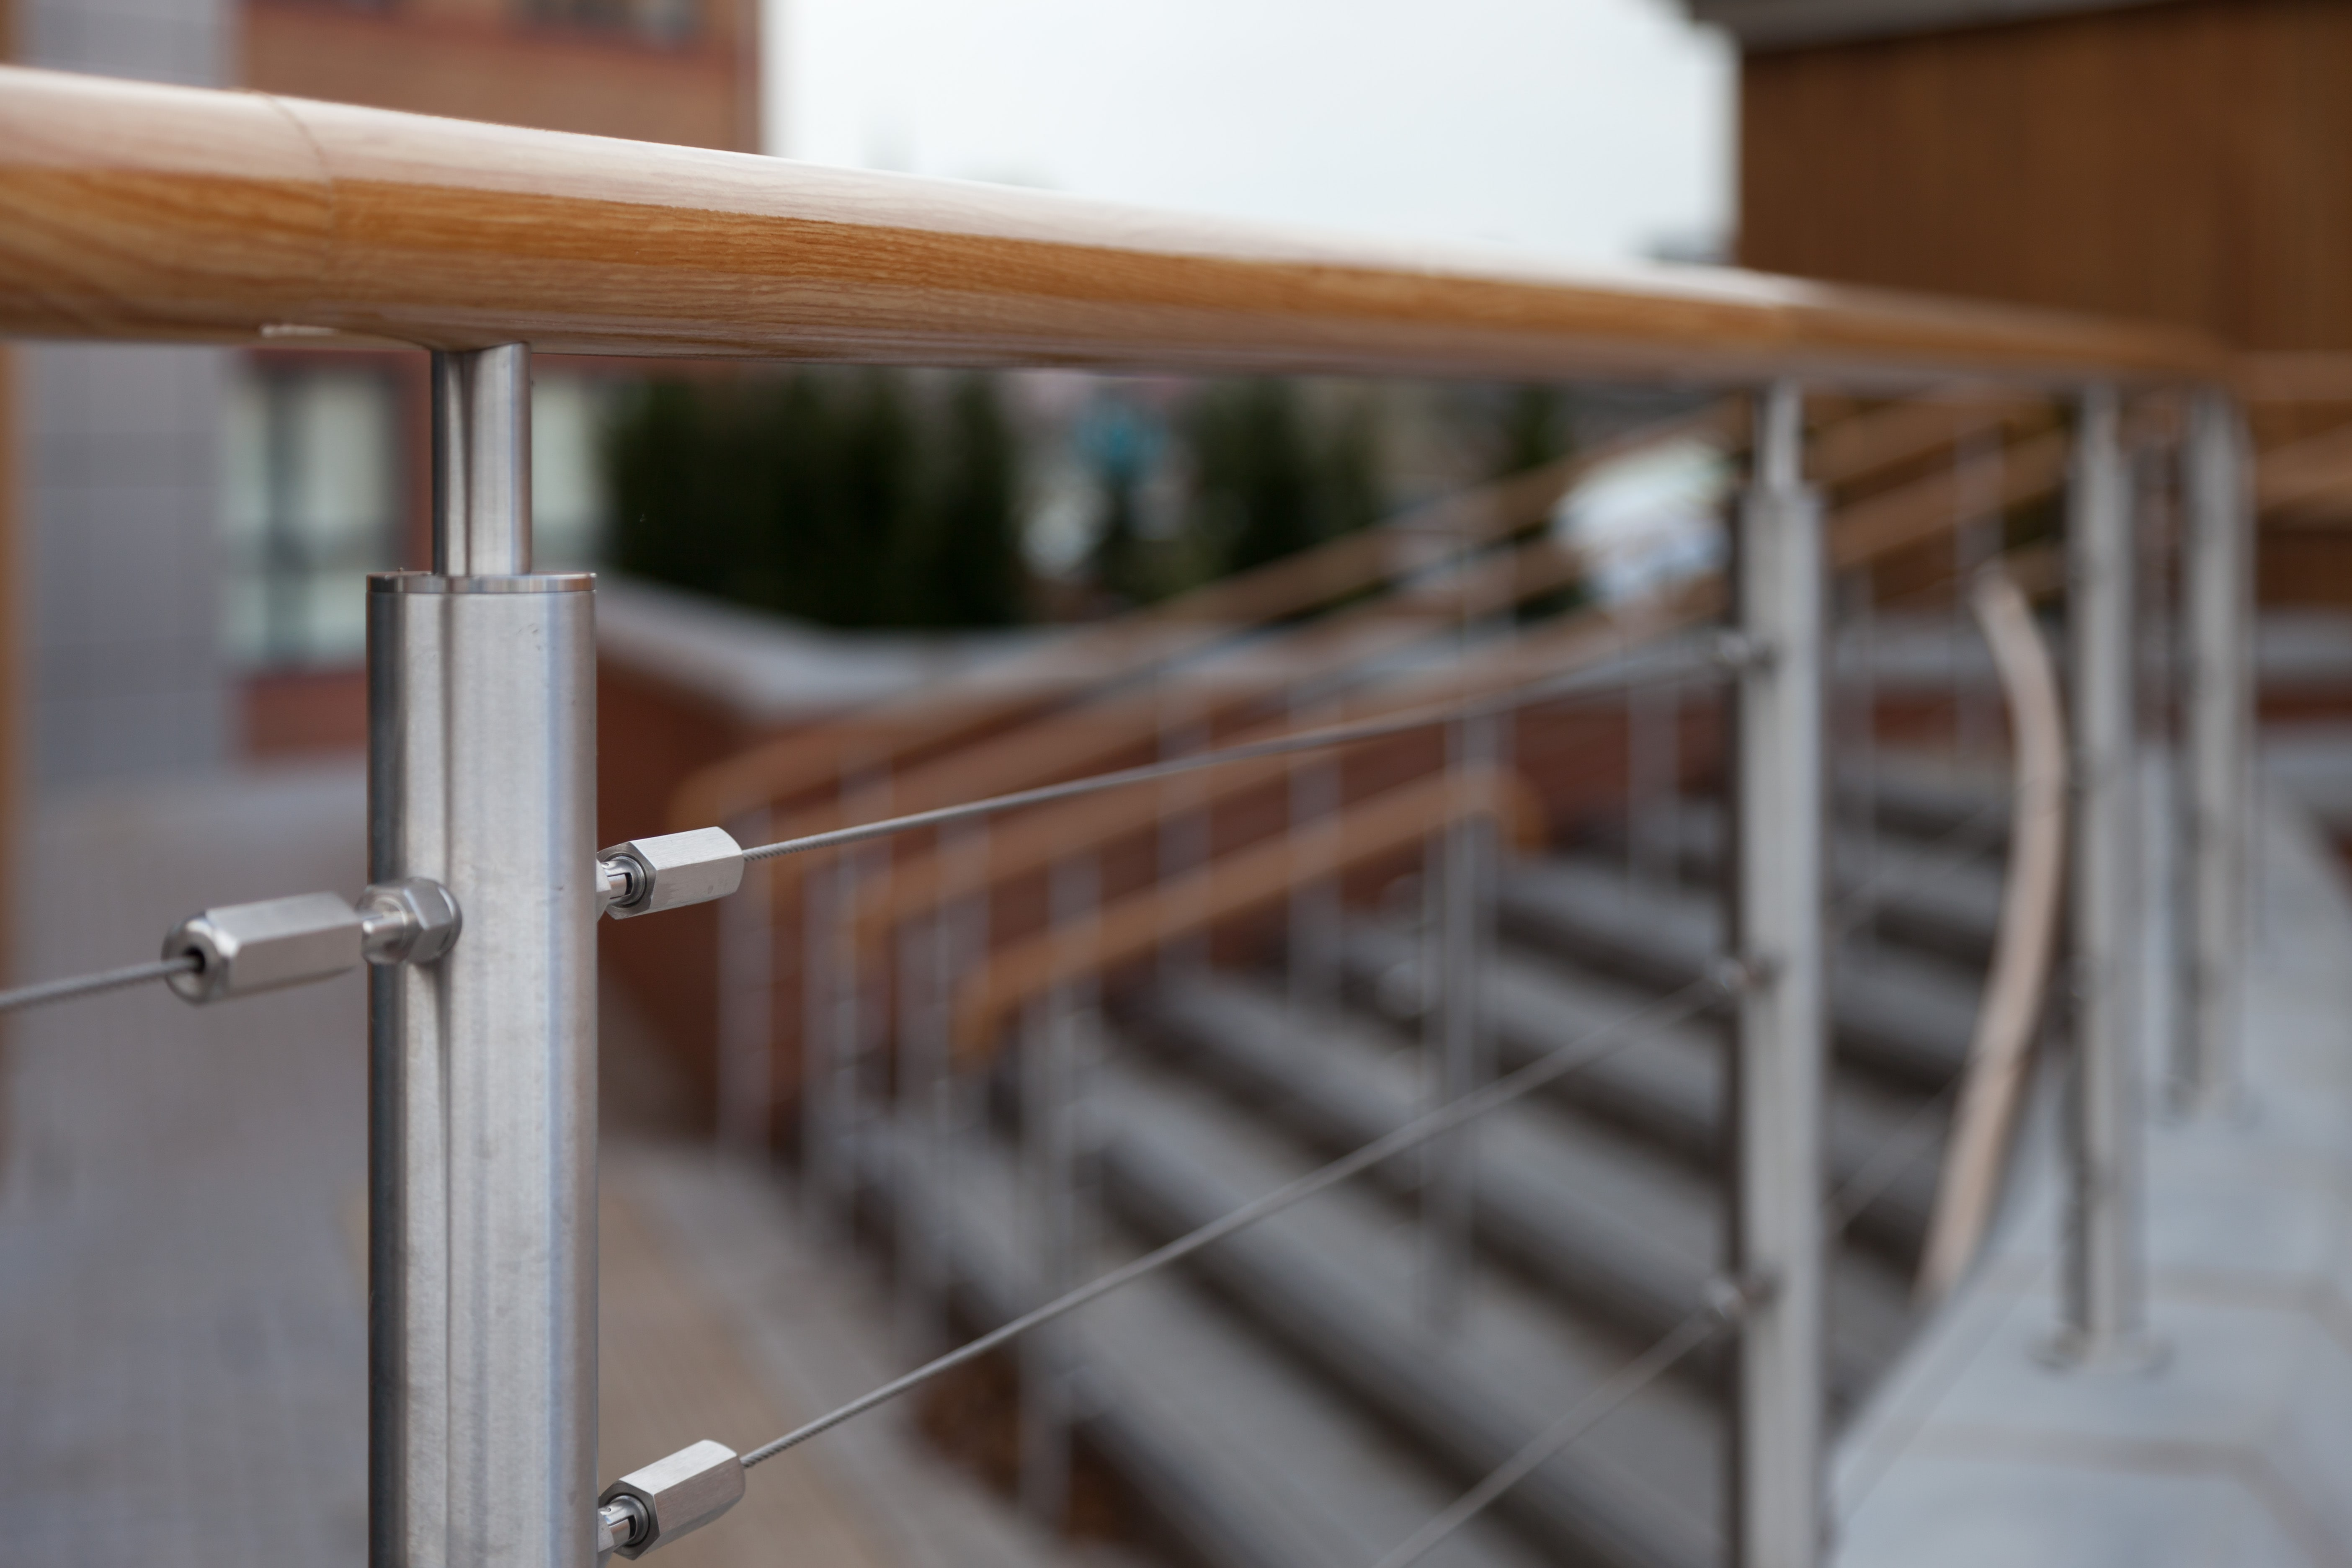 Wood Effect Handrails And Balustrade Chosen At College